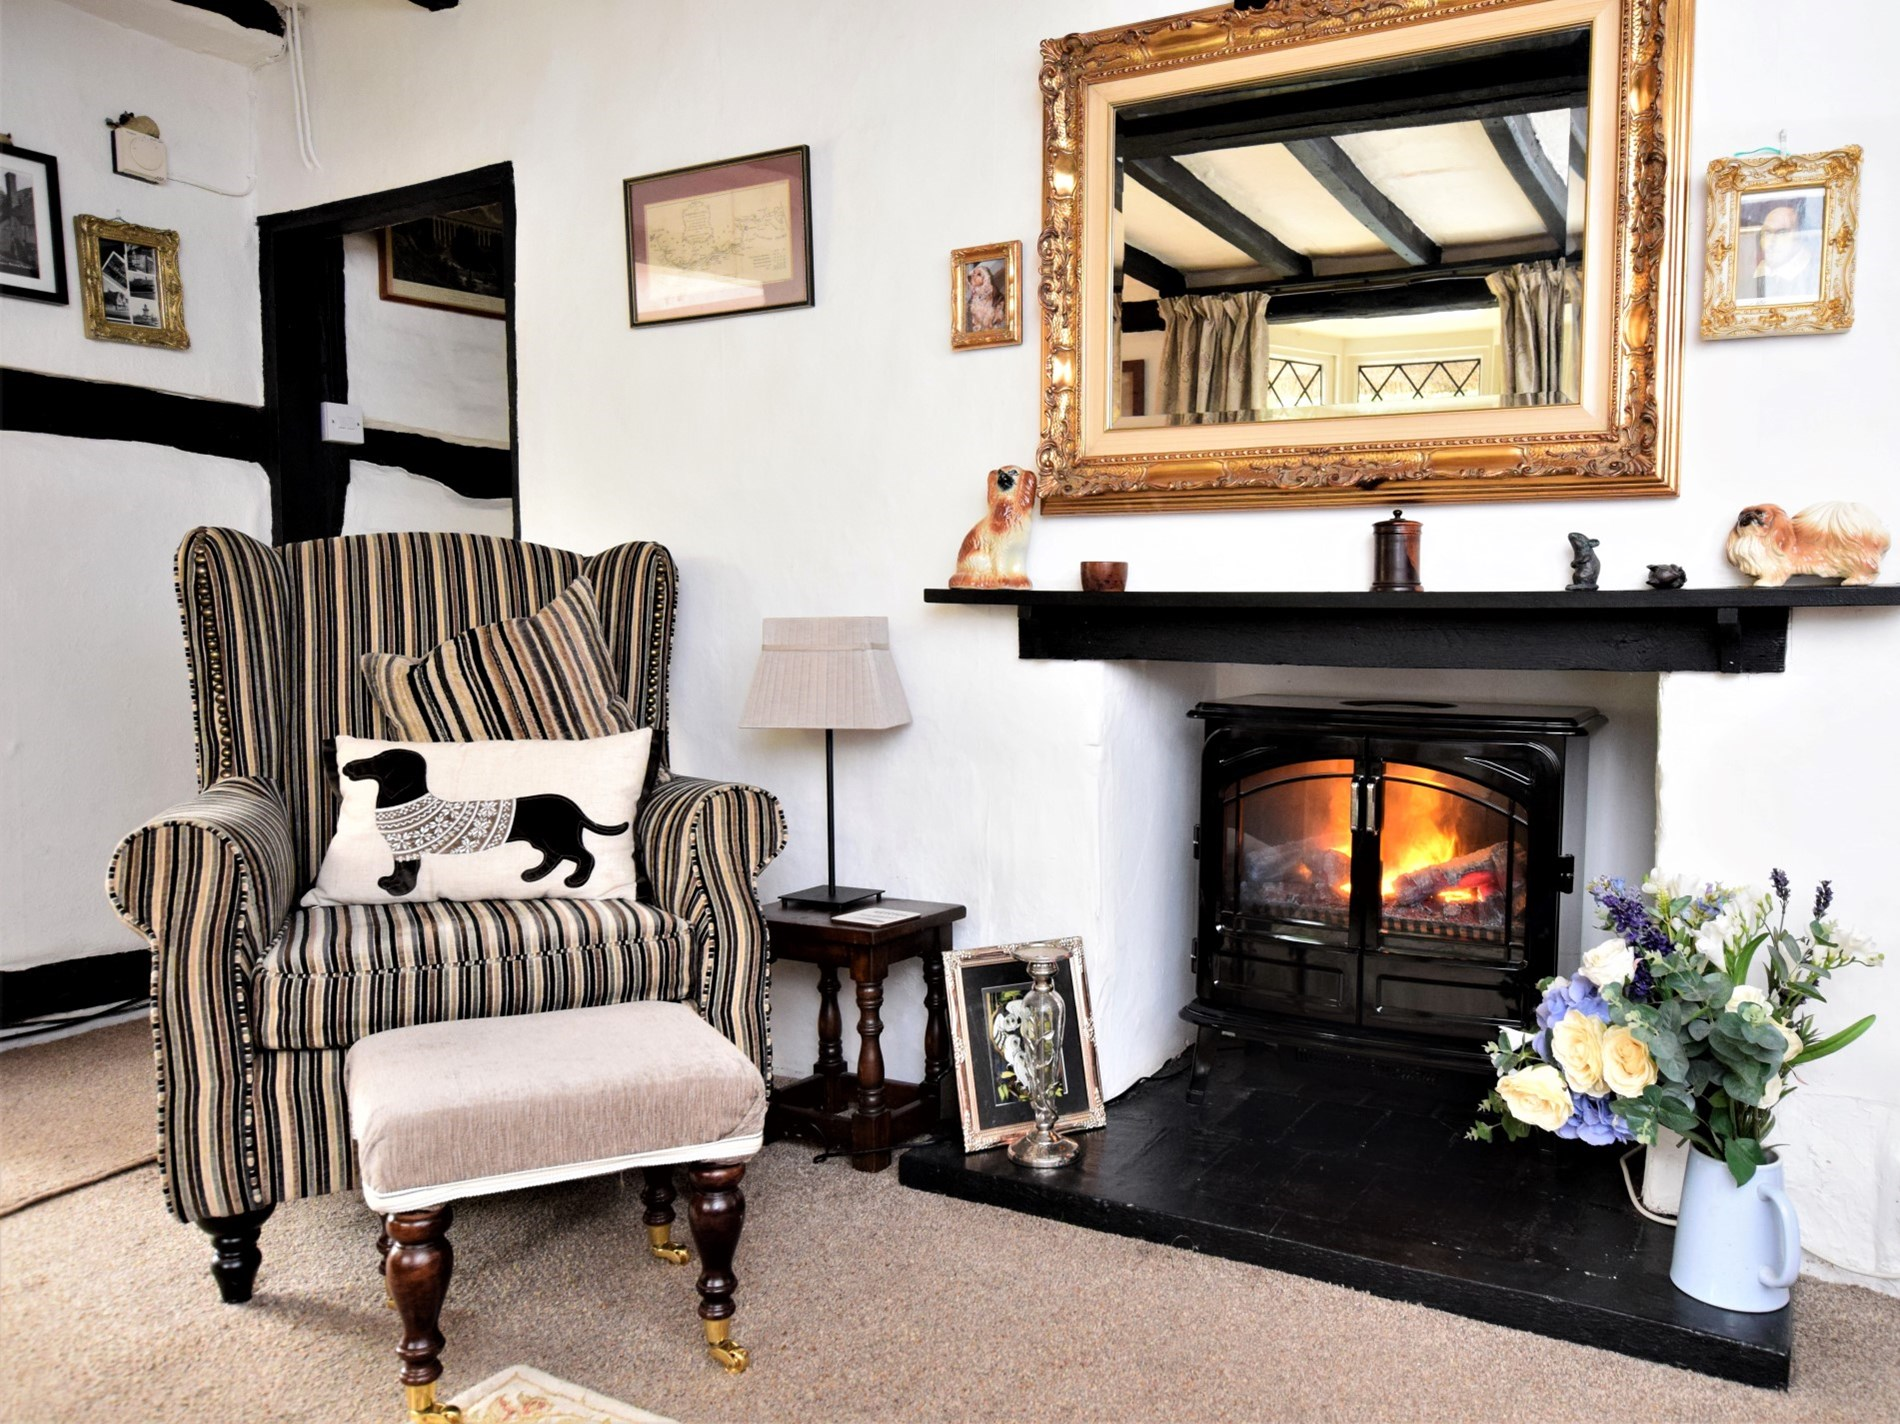 2 Bedroom Cottage in Stratford -upon- Avon, Heart of England